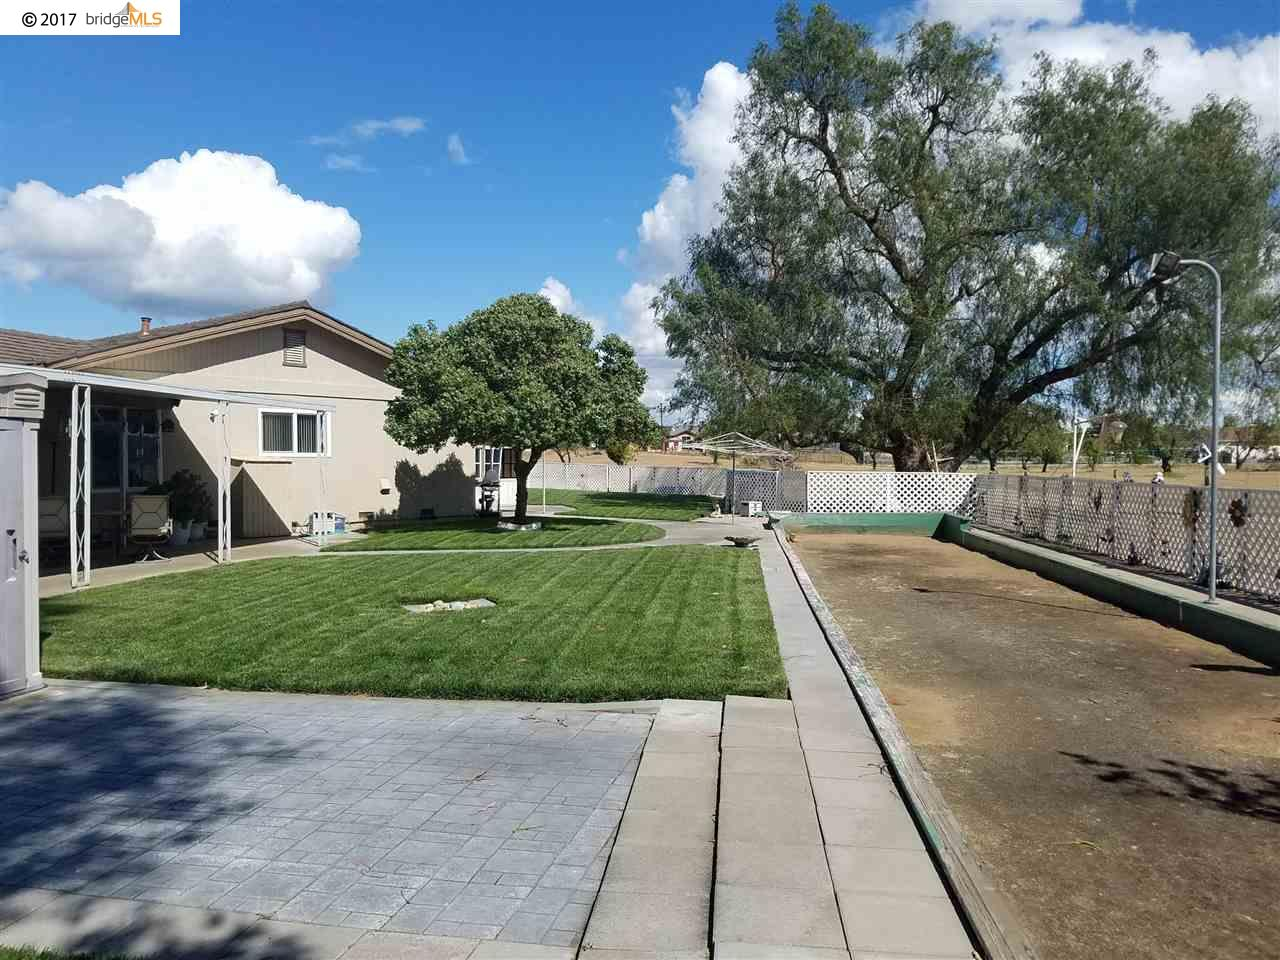 Additional photo for property listing at 59-67 Old Stagecoach Road  Brentwood, カリフォルニア 94513 アメリカ合衆国